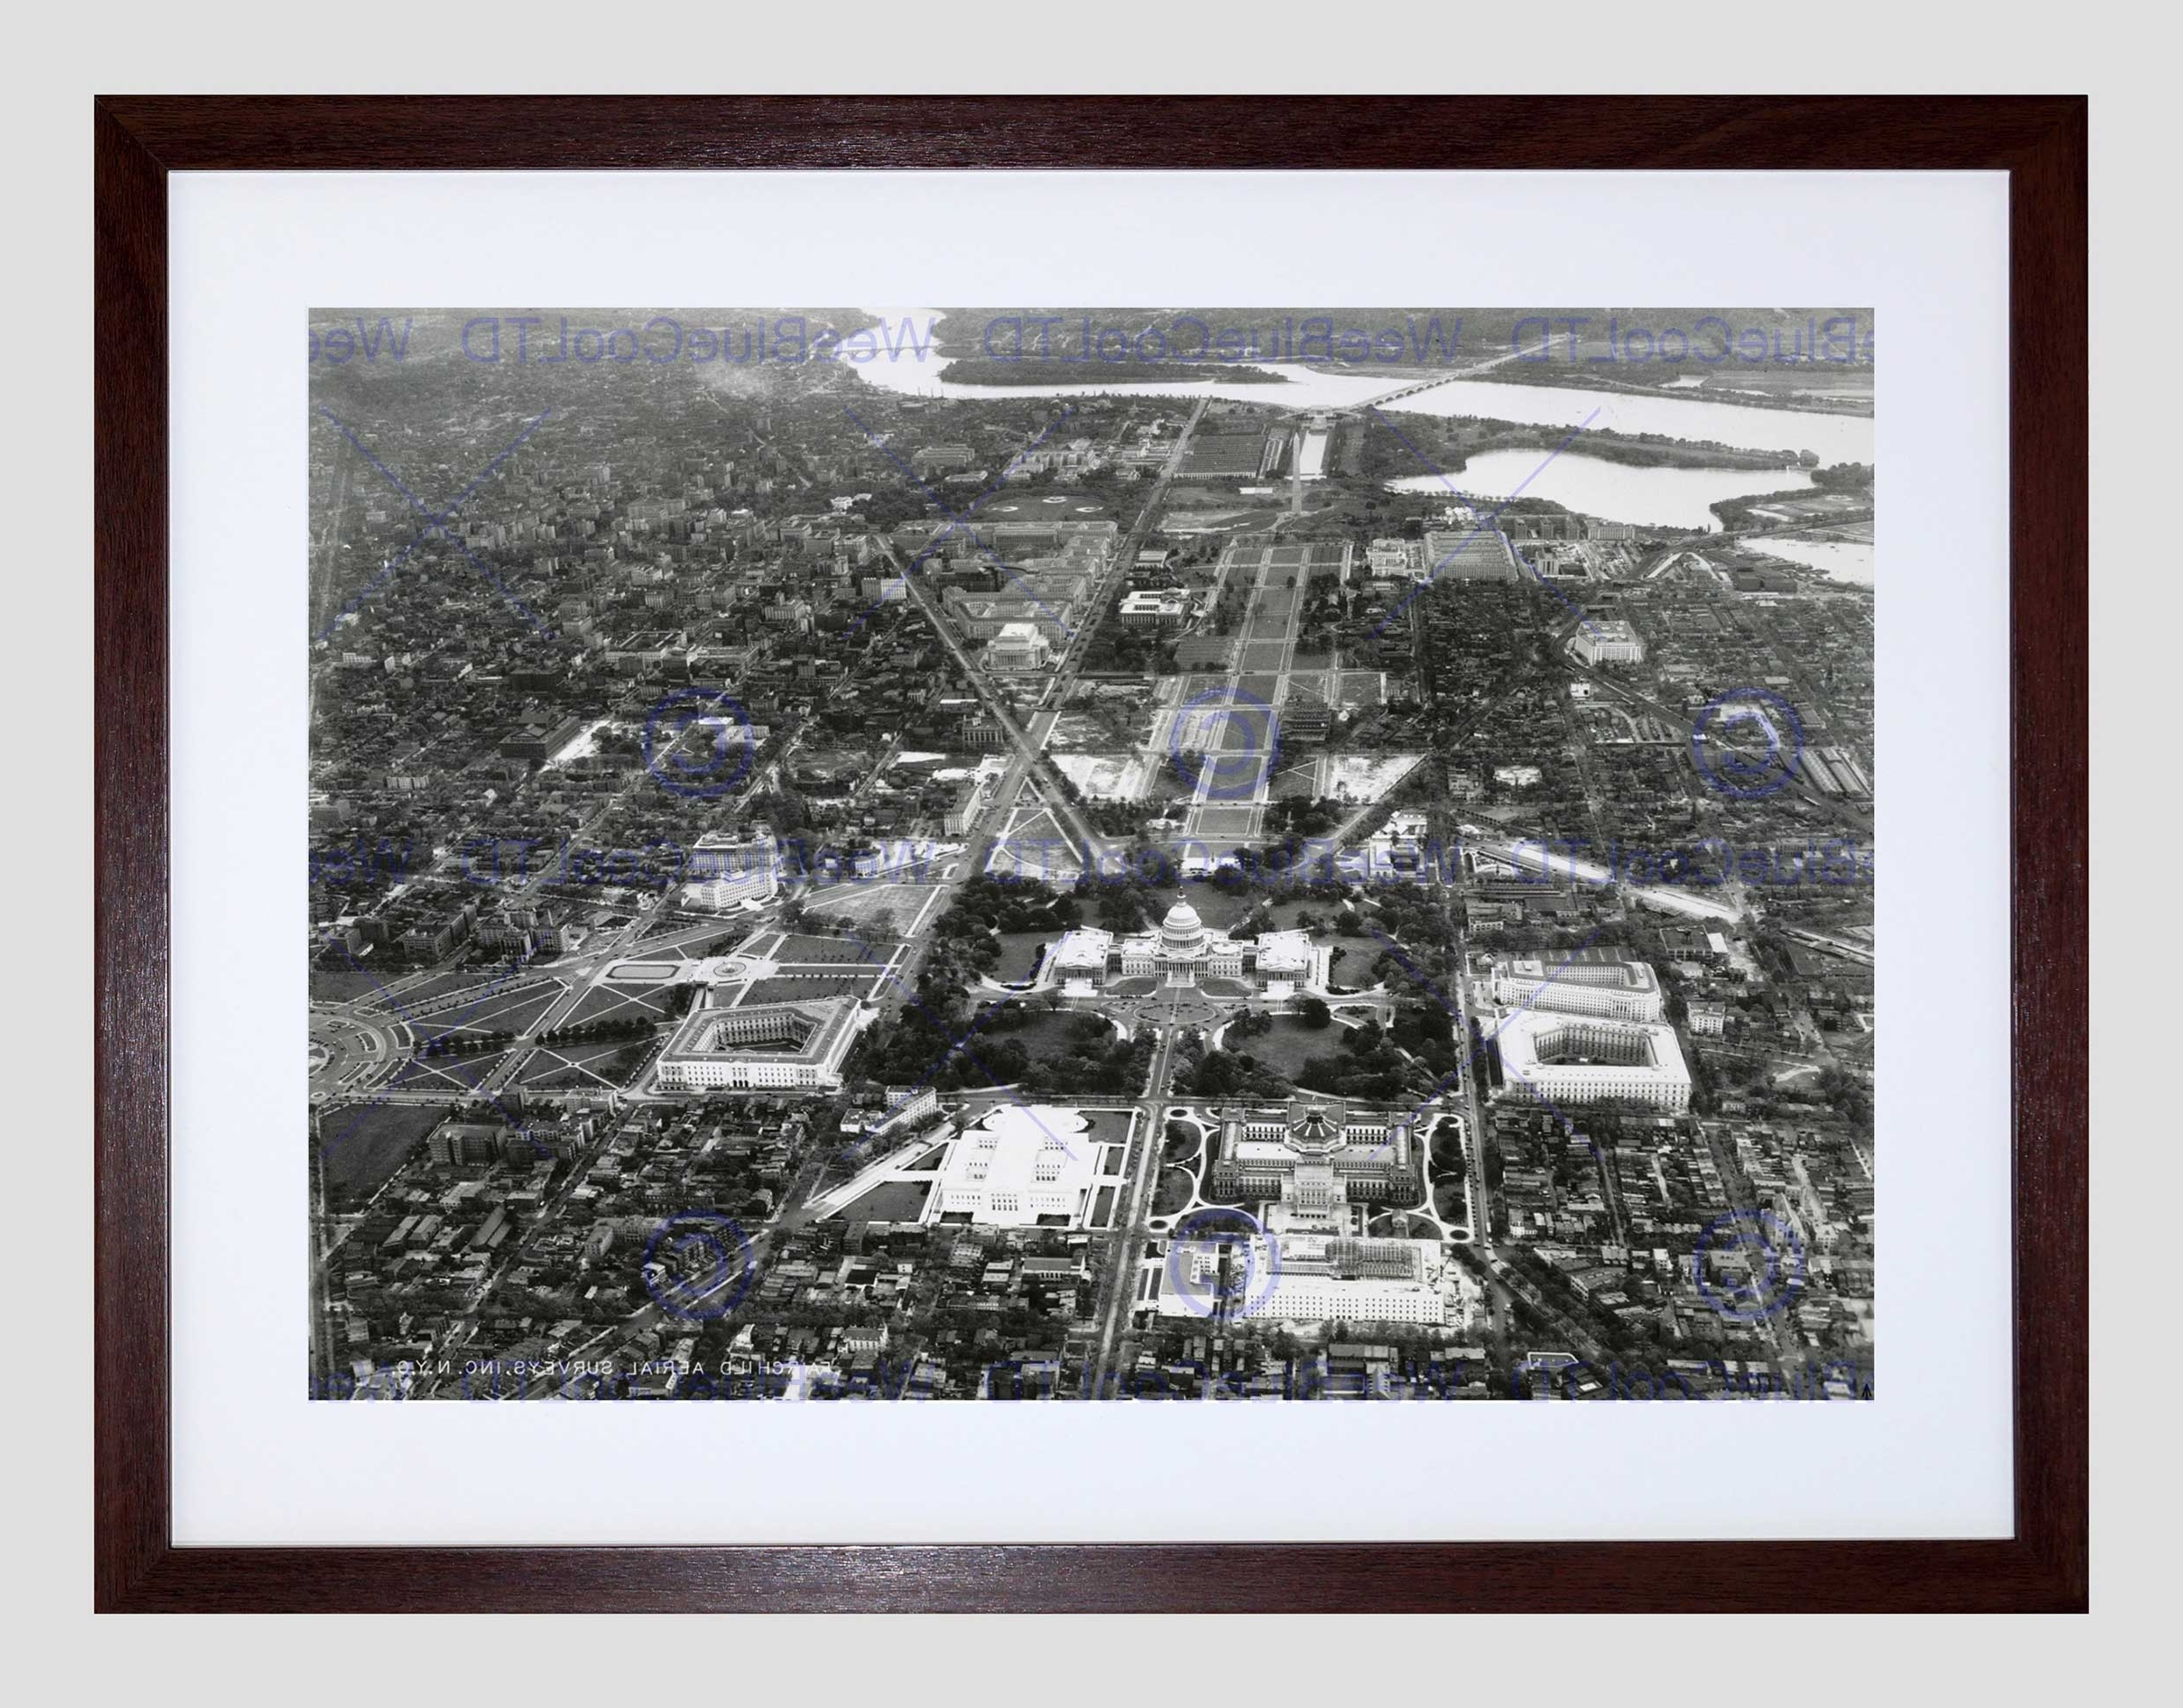 Current Washington Dc Framed Art Prints Throughout Vintage Aerial Capitol Hill Washington Dc America Usa Framed Art (View 4 of 15)